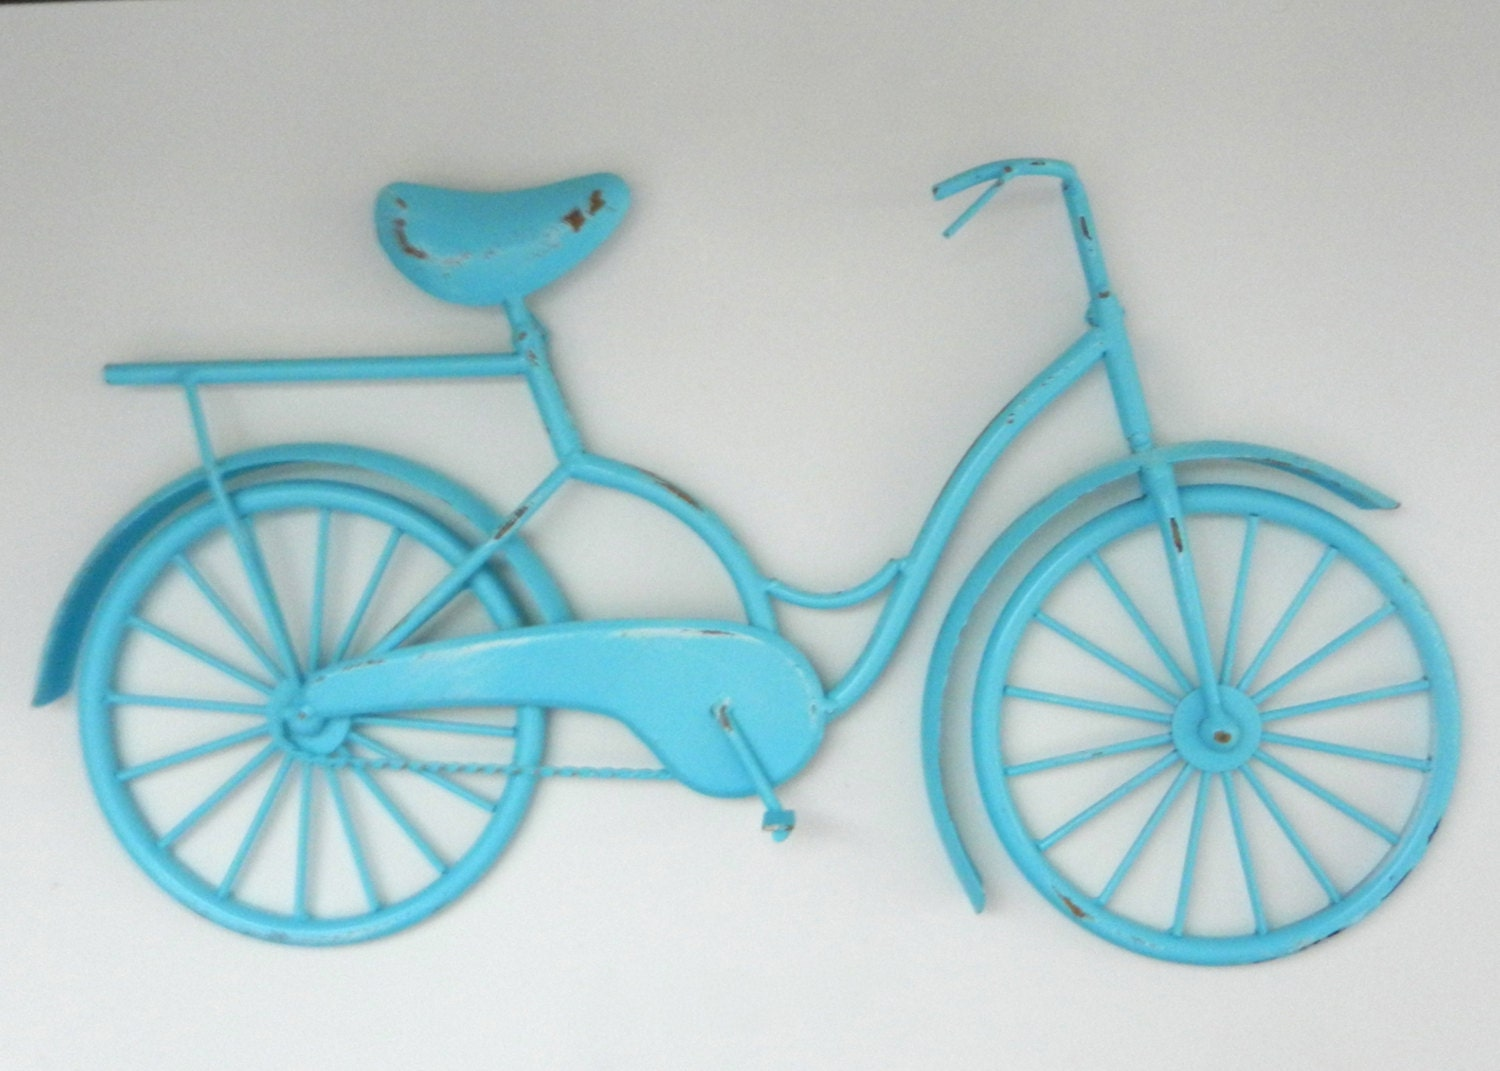 Metal Wall Decor Bicycle : Aqua bicycle wall decor dorm outdoor by juxtapositionsc